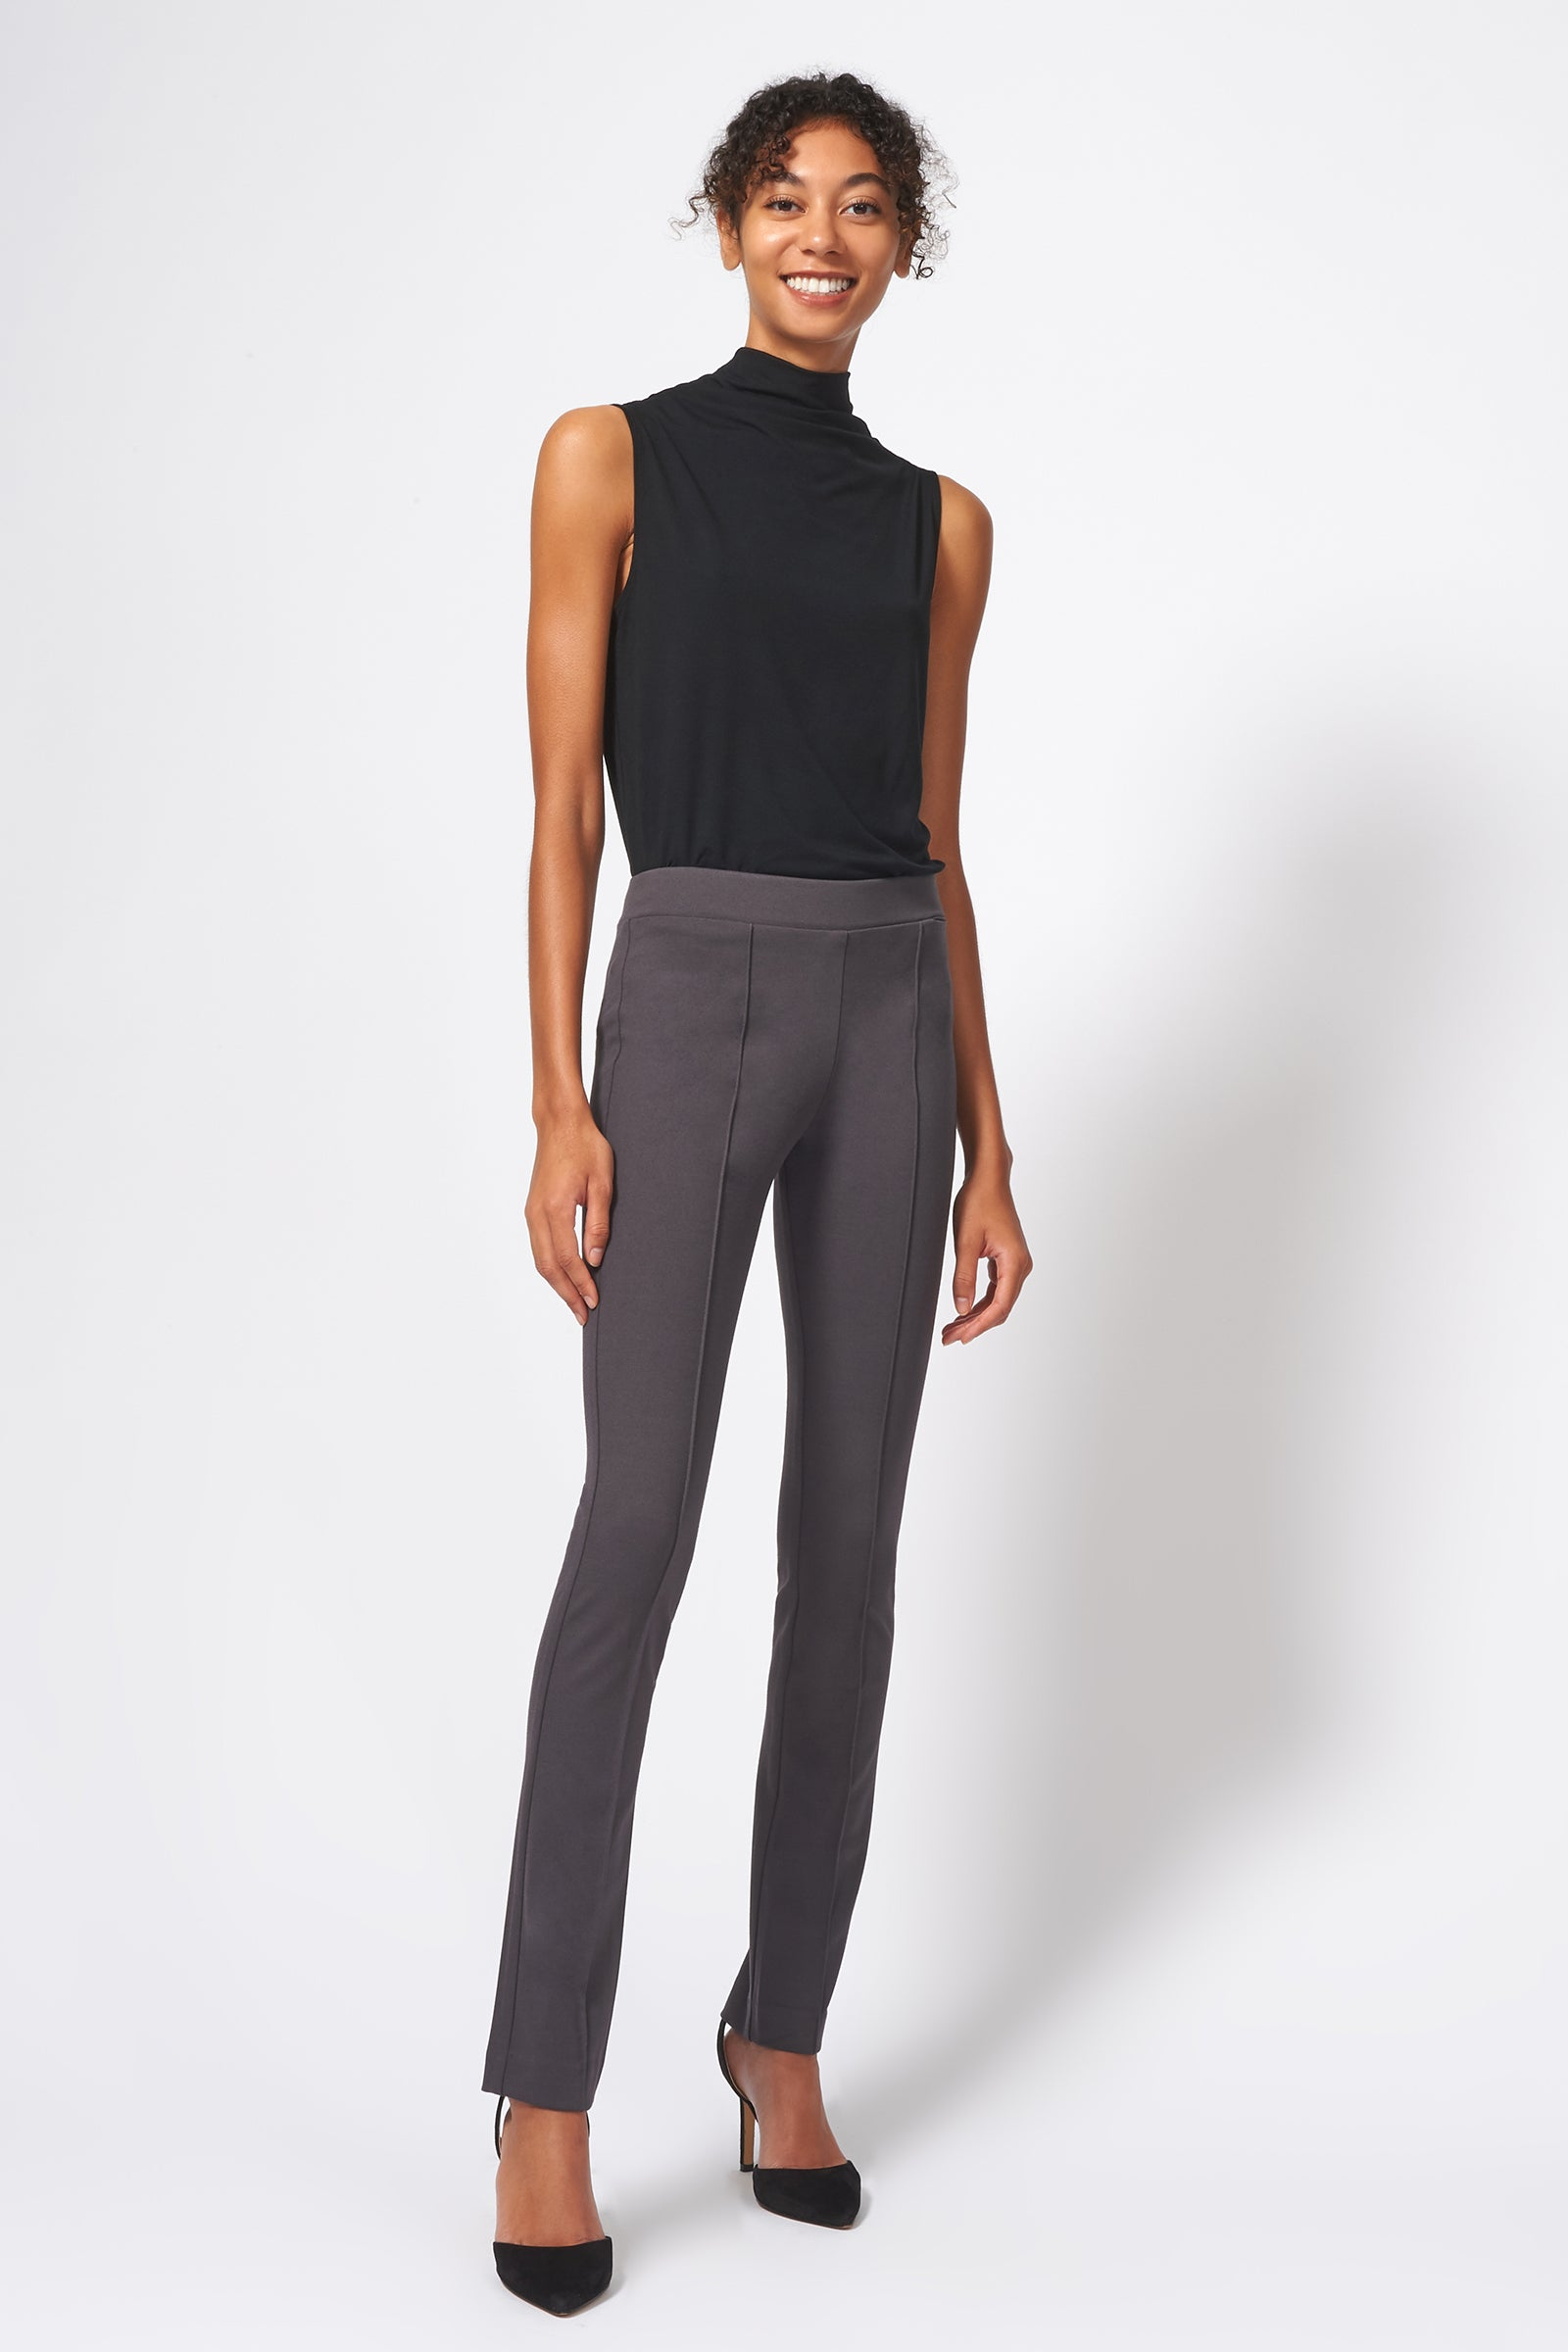 Kal Rieman Pintuck Ponte Straight Leg Pant in Charcoal on Model Full Front View